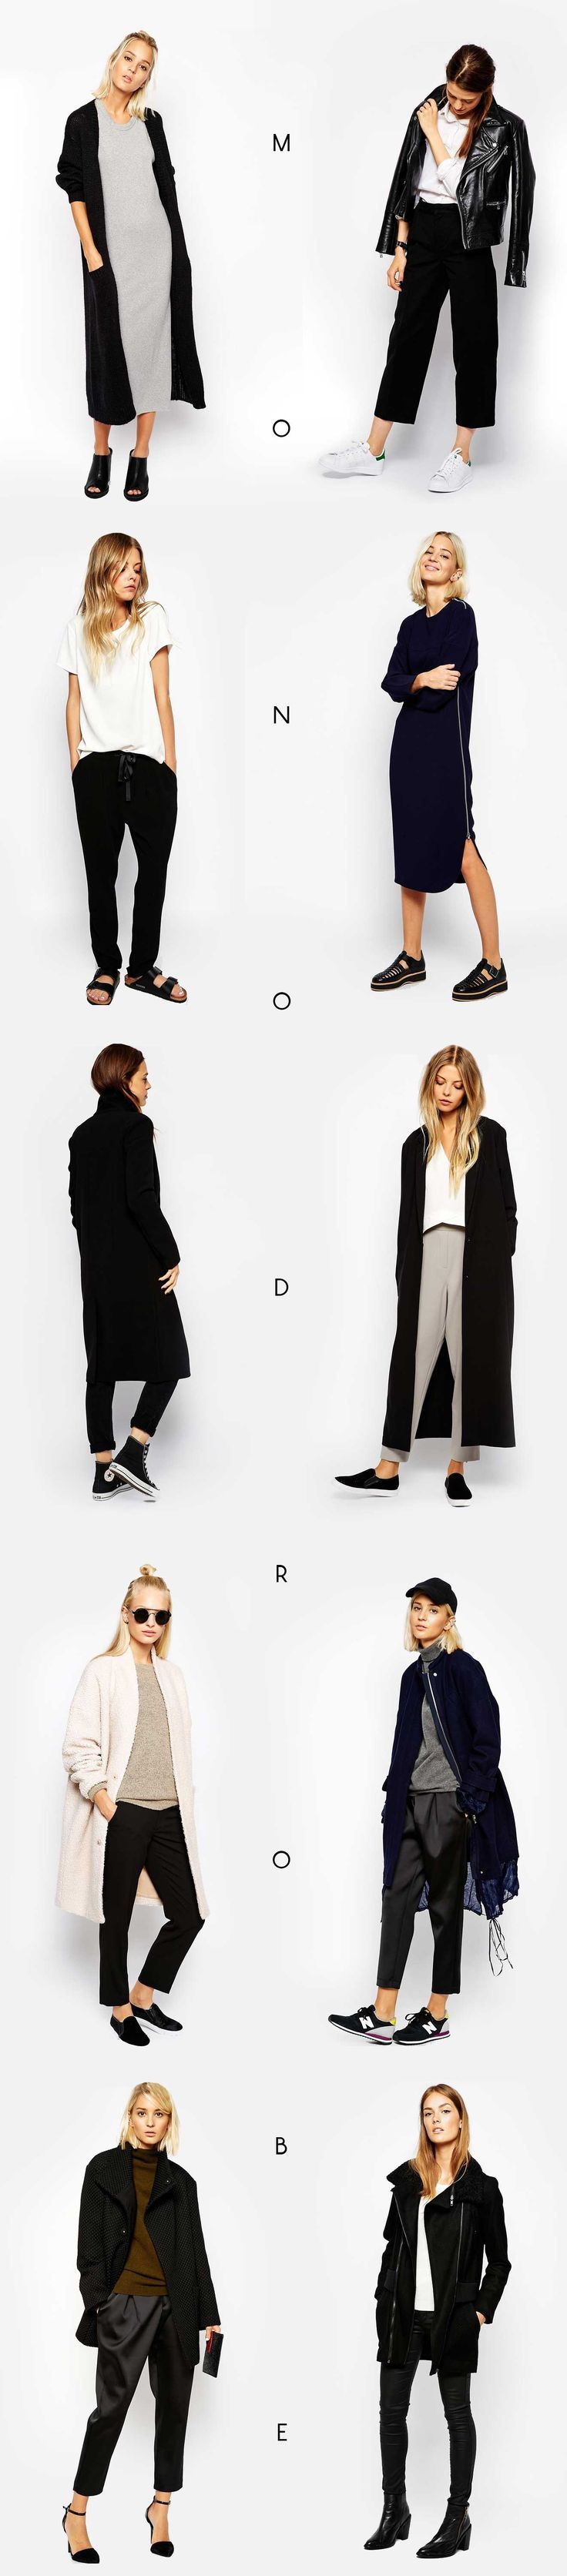 1908 Best Minimalistic Fashion Style For Minimalist Images On Pinterest Best Fashion